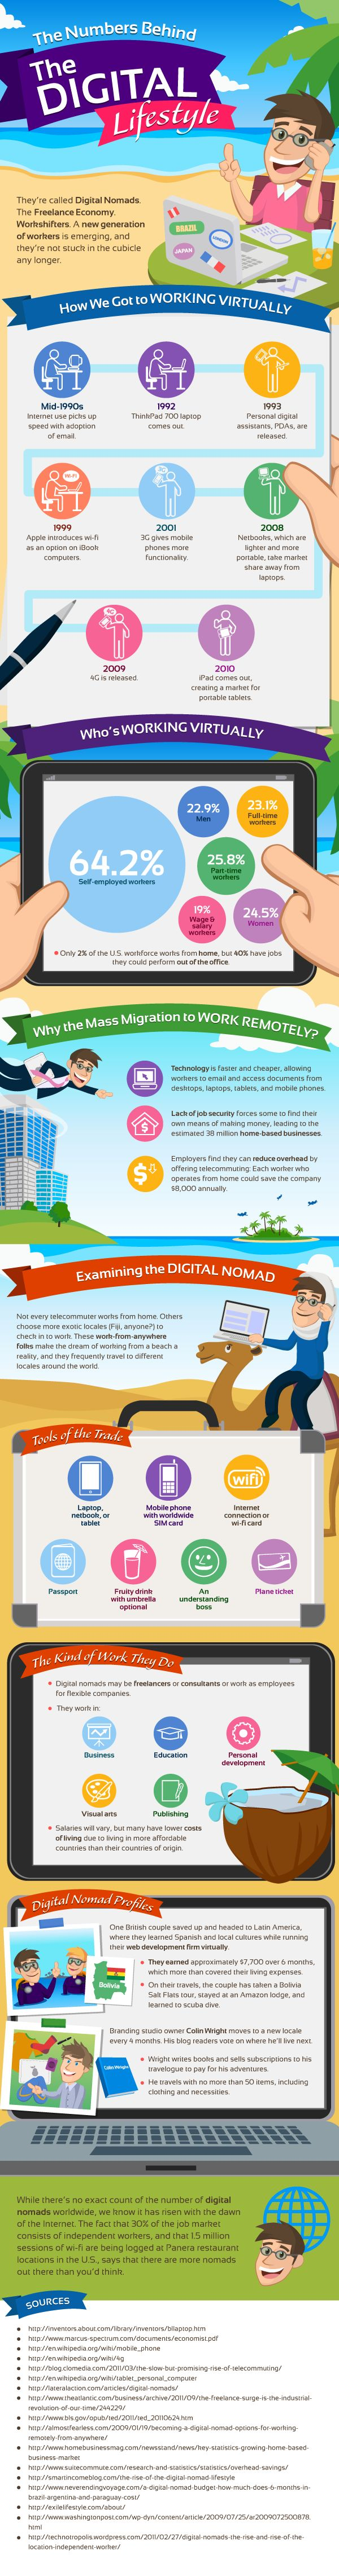 Wanna turn into a Digital Nomad? | Devenir un Technomade, cela vous tente ?